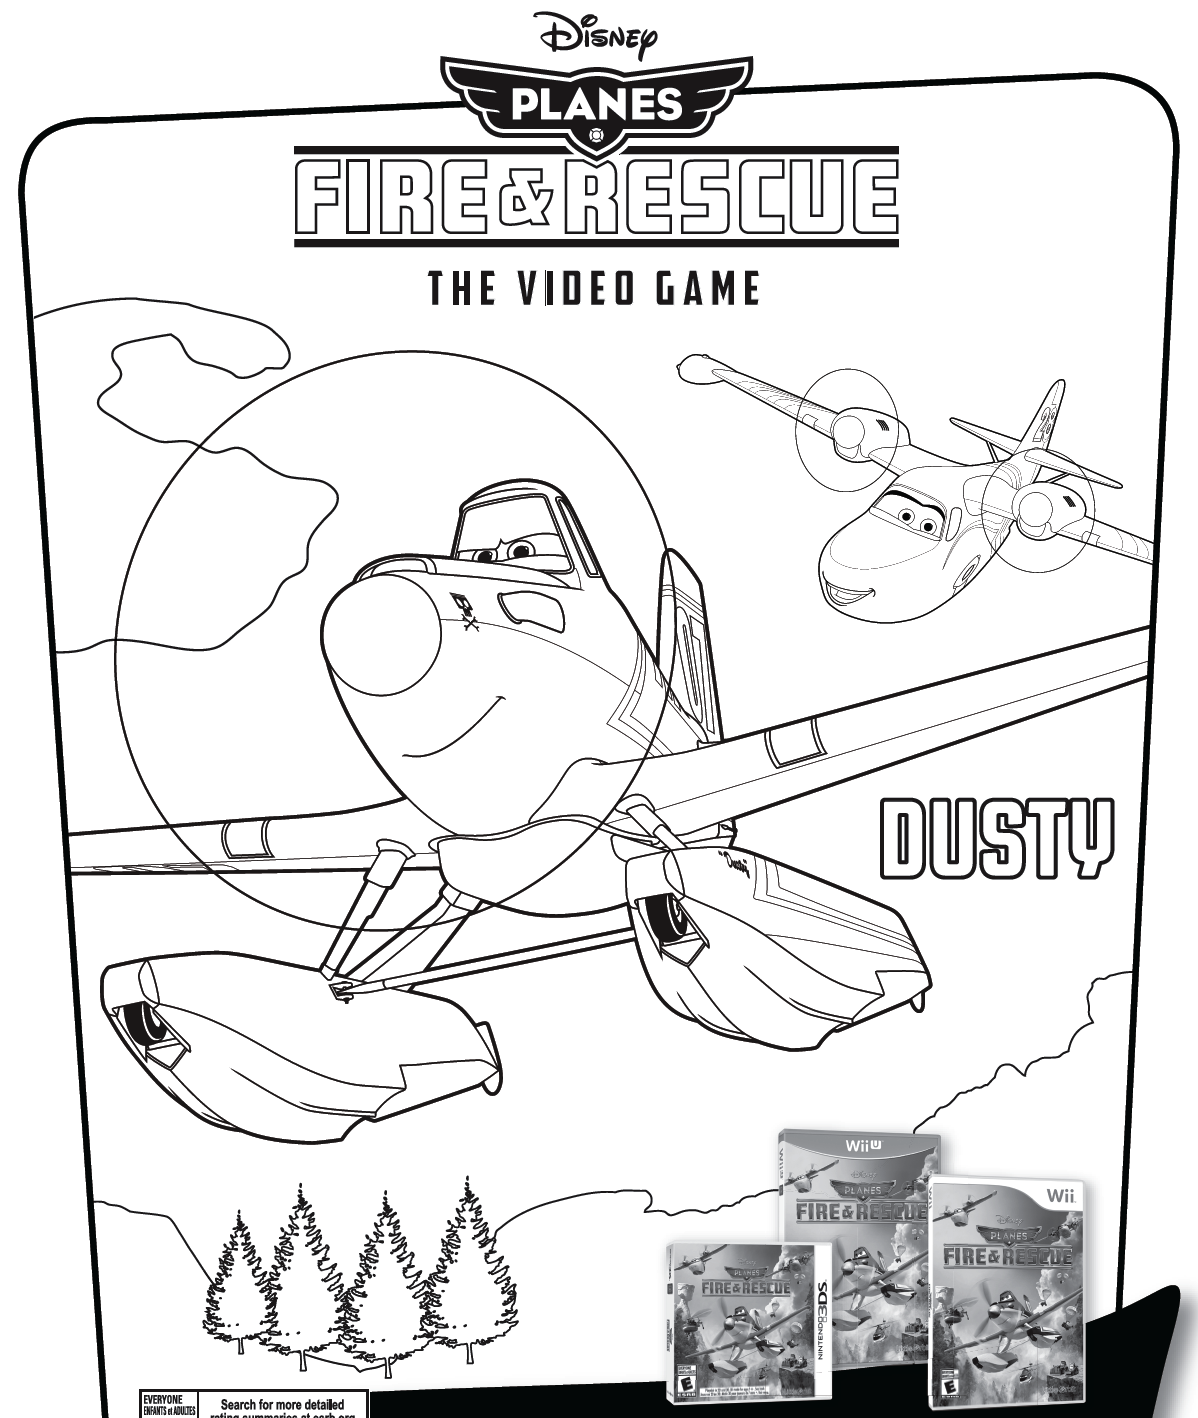 Disney Com The Official Home For All Things Disney Coloring Pages New Video Games Disney Planes